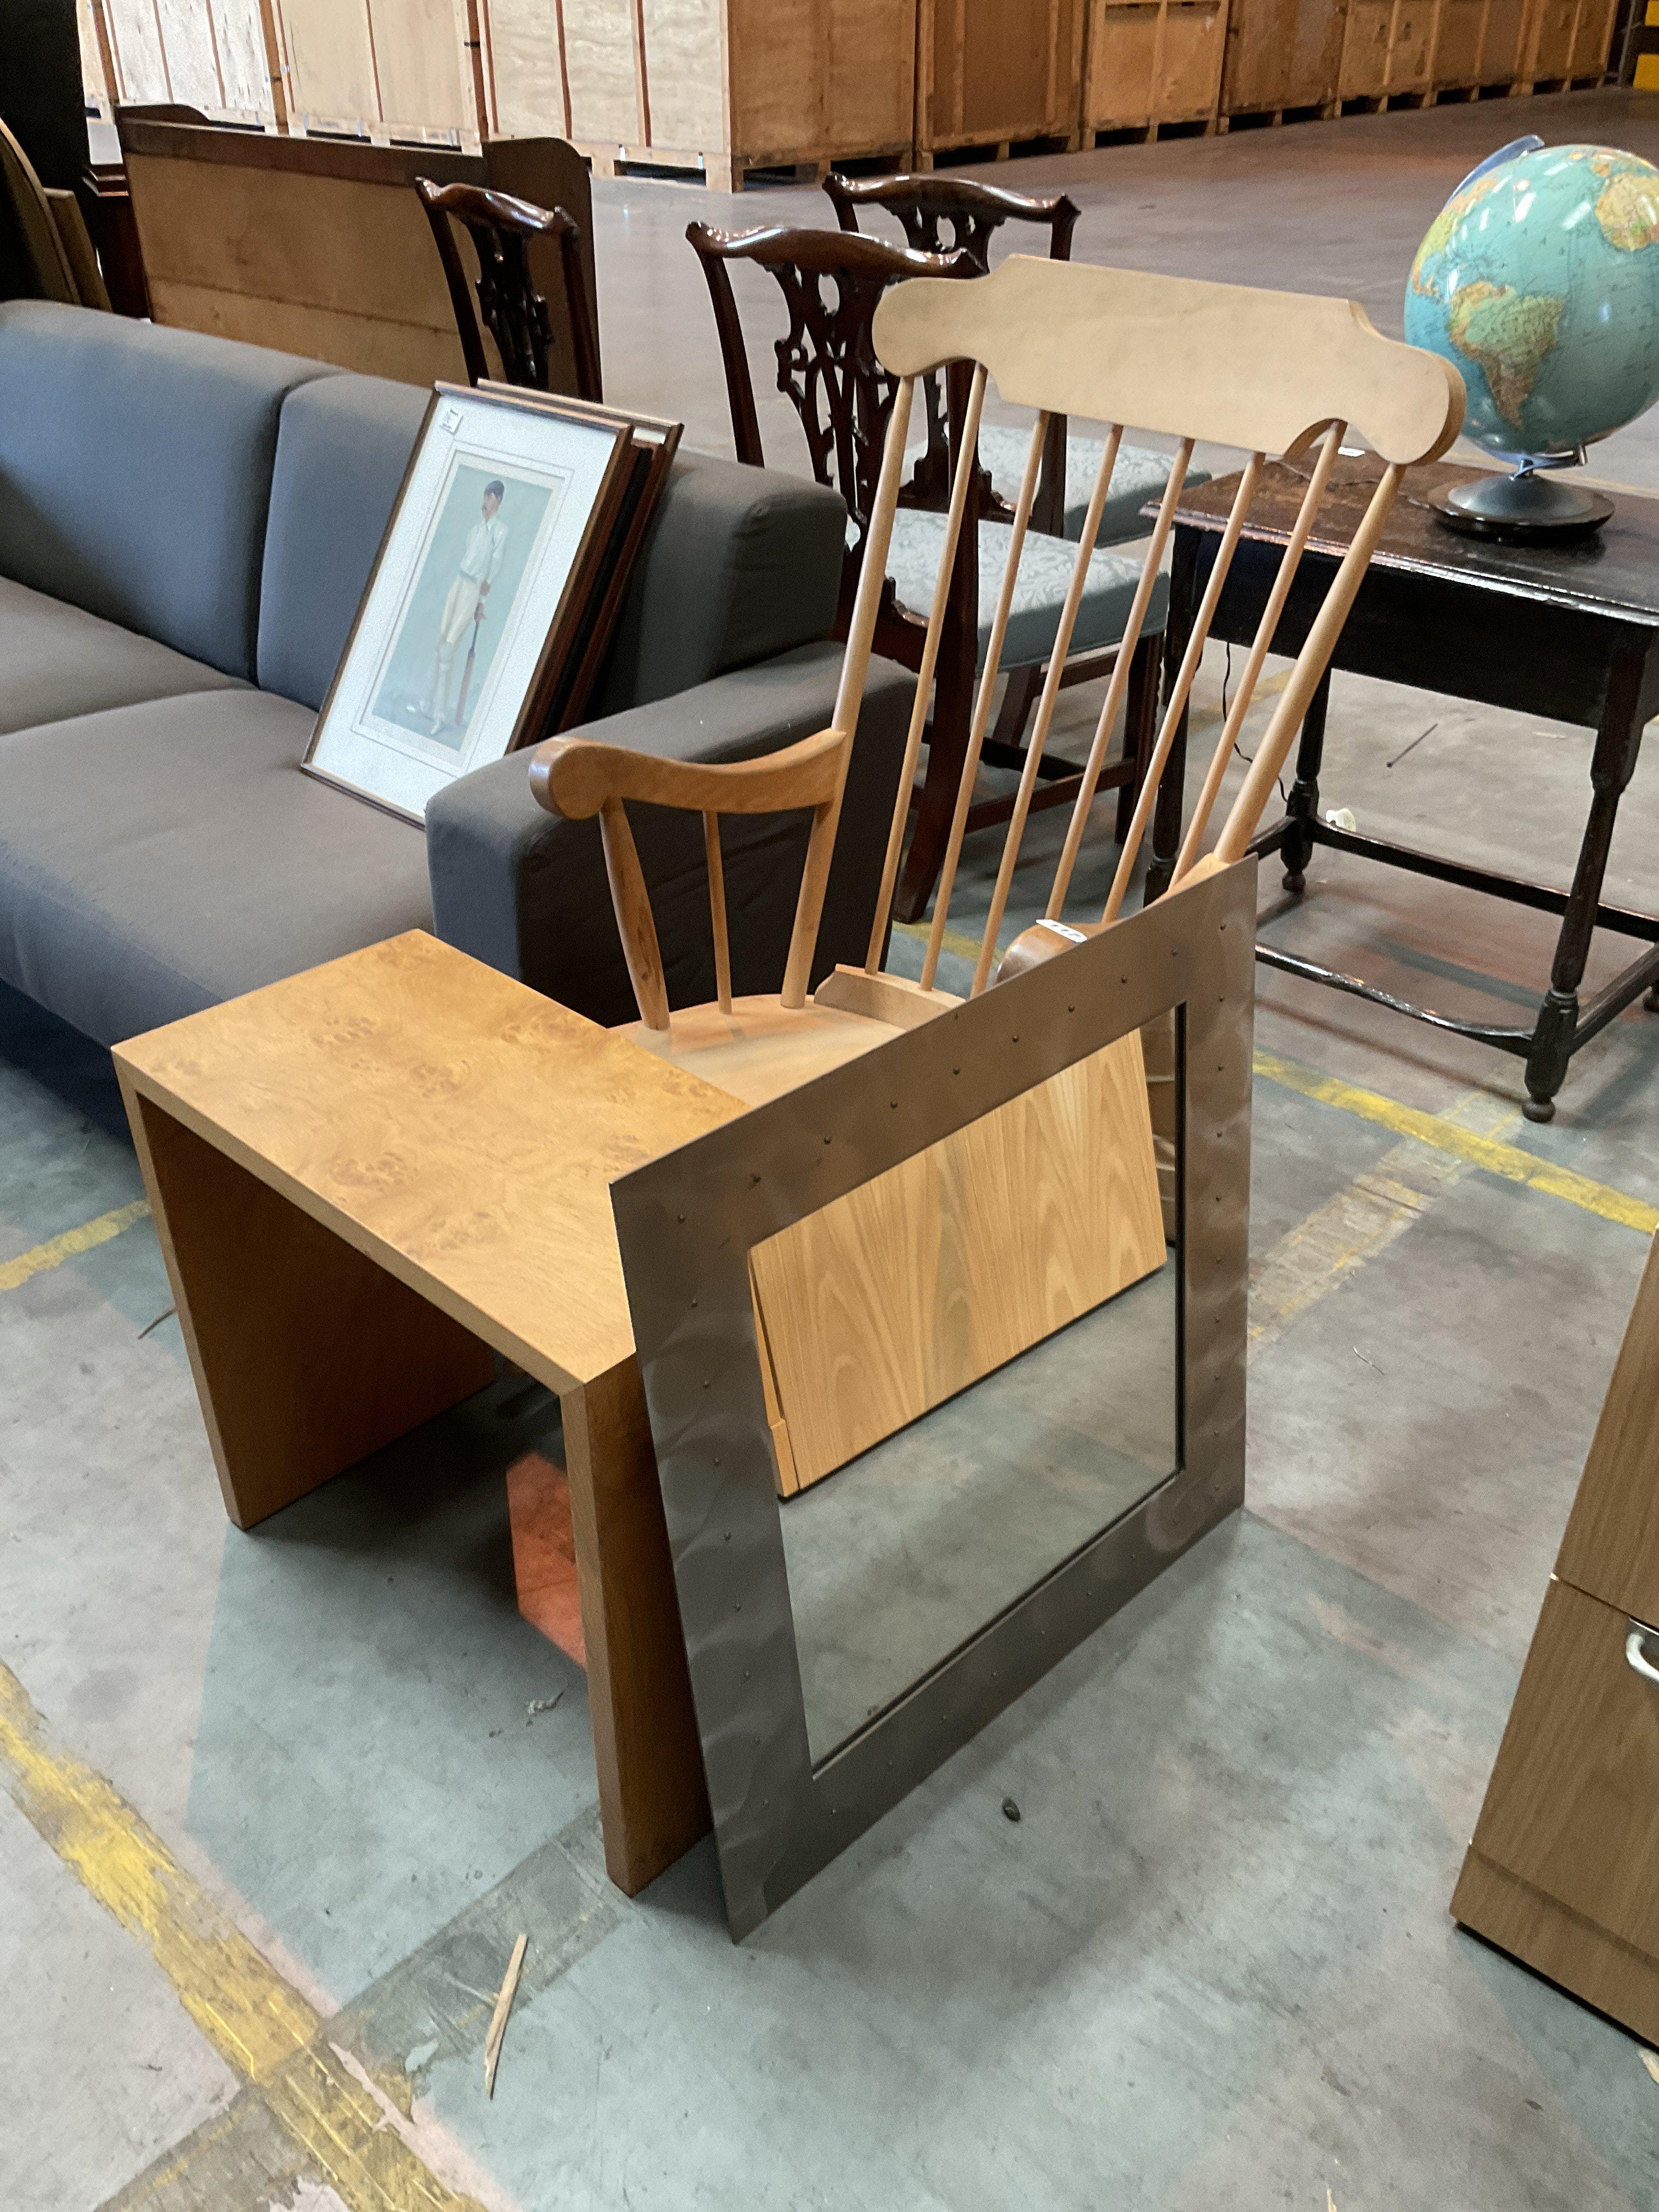 Pine rocking chairs burr wood side table, and brushed steel framed mirror.